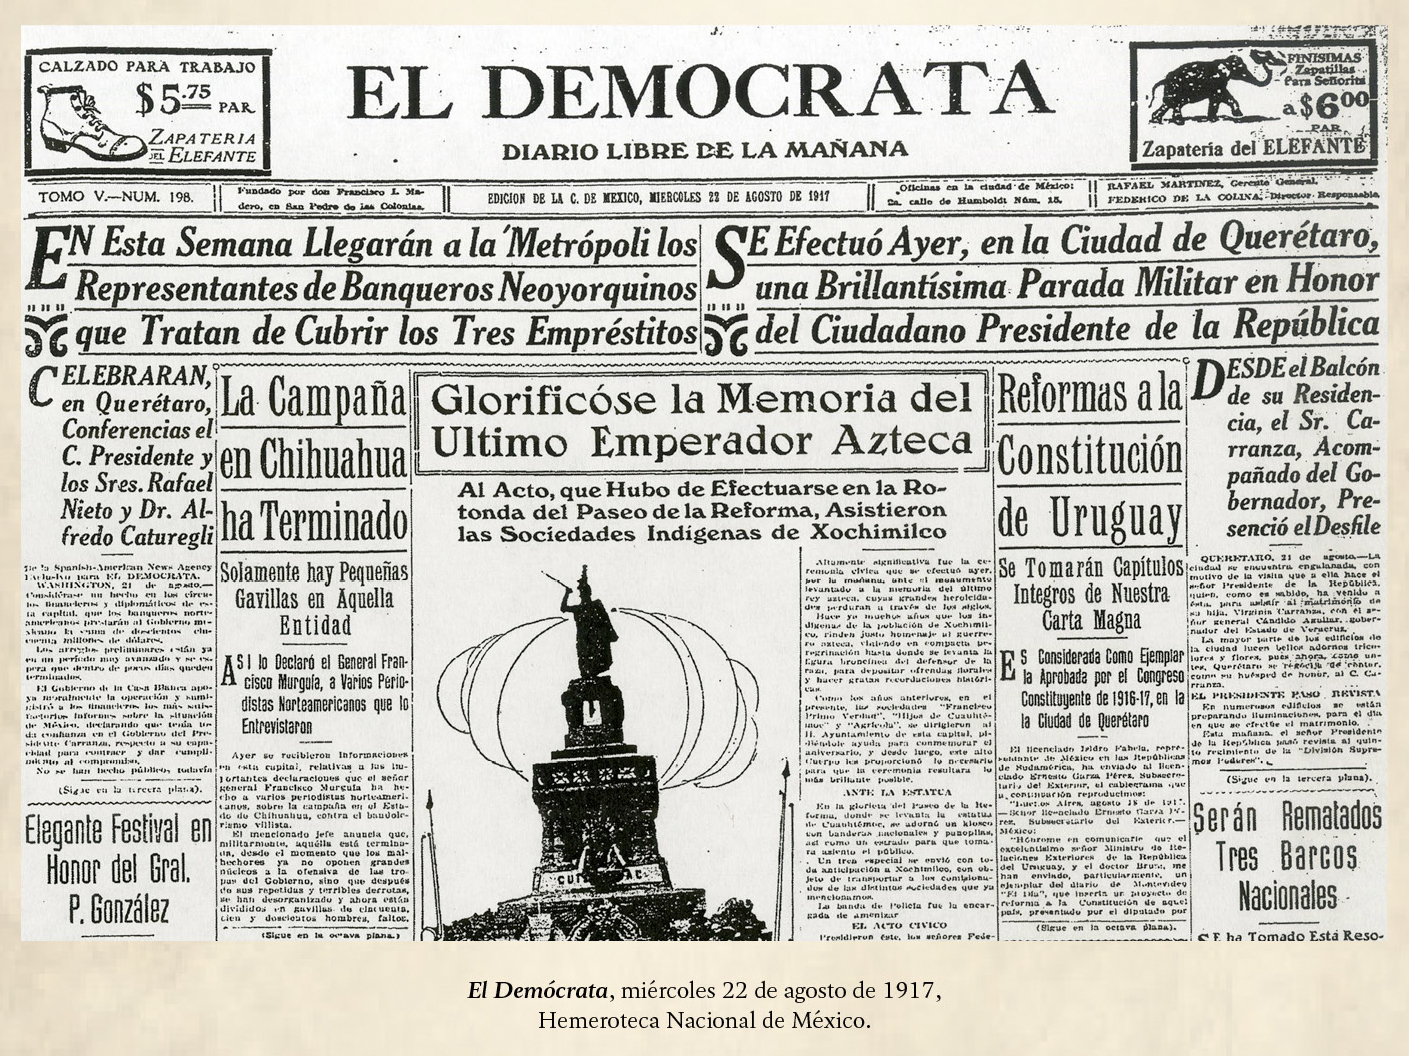 august 21st 1917 it is proposed that the constitution of uruguay